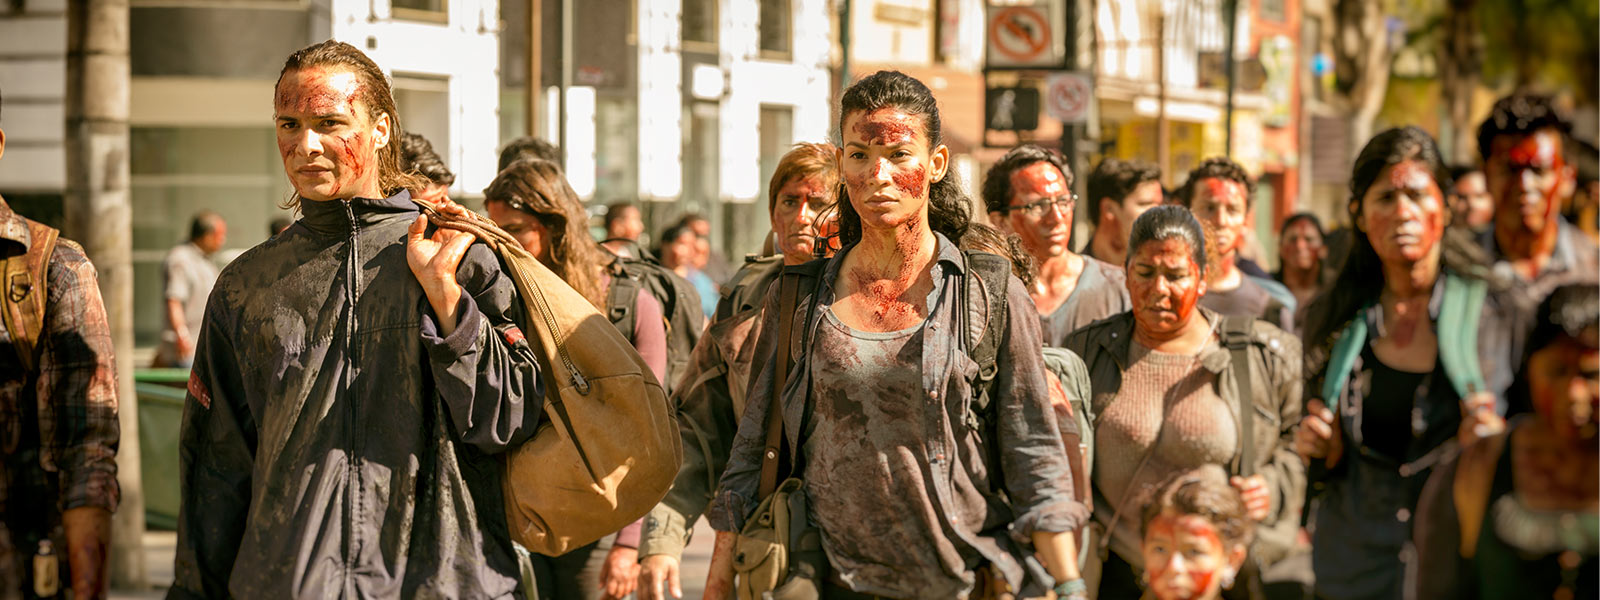 fear the walking dead 215 north leads to good season 3 setup 2017 images